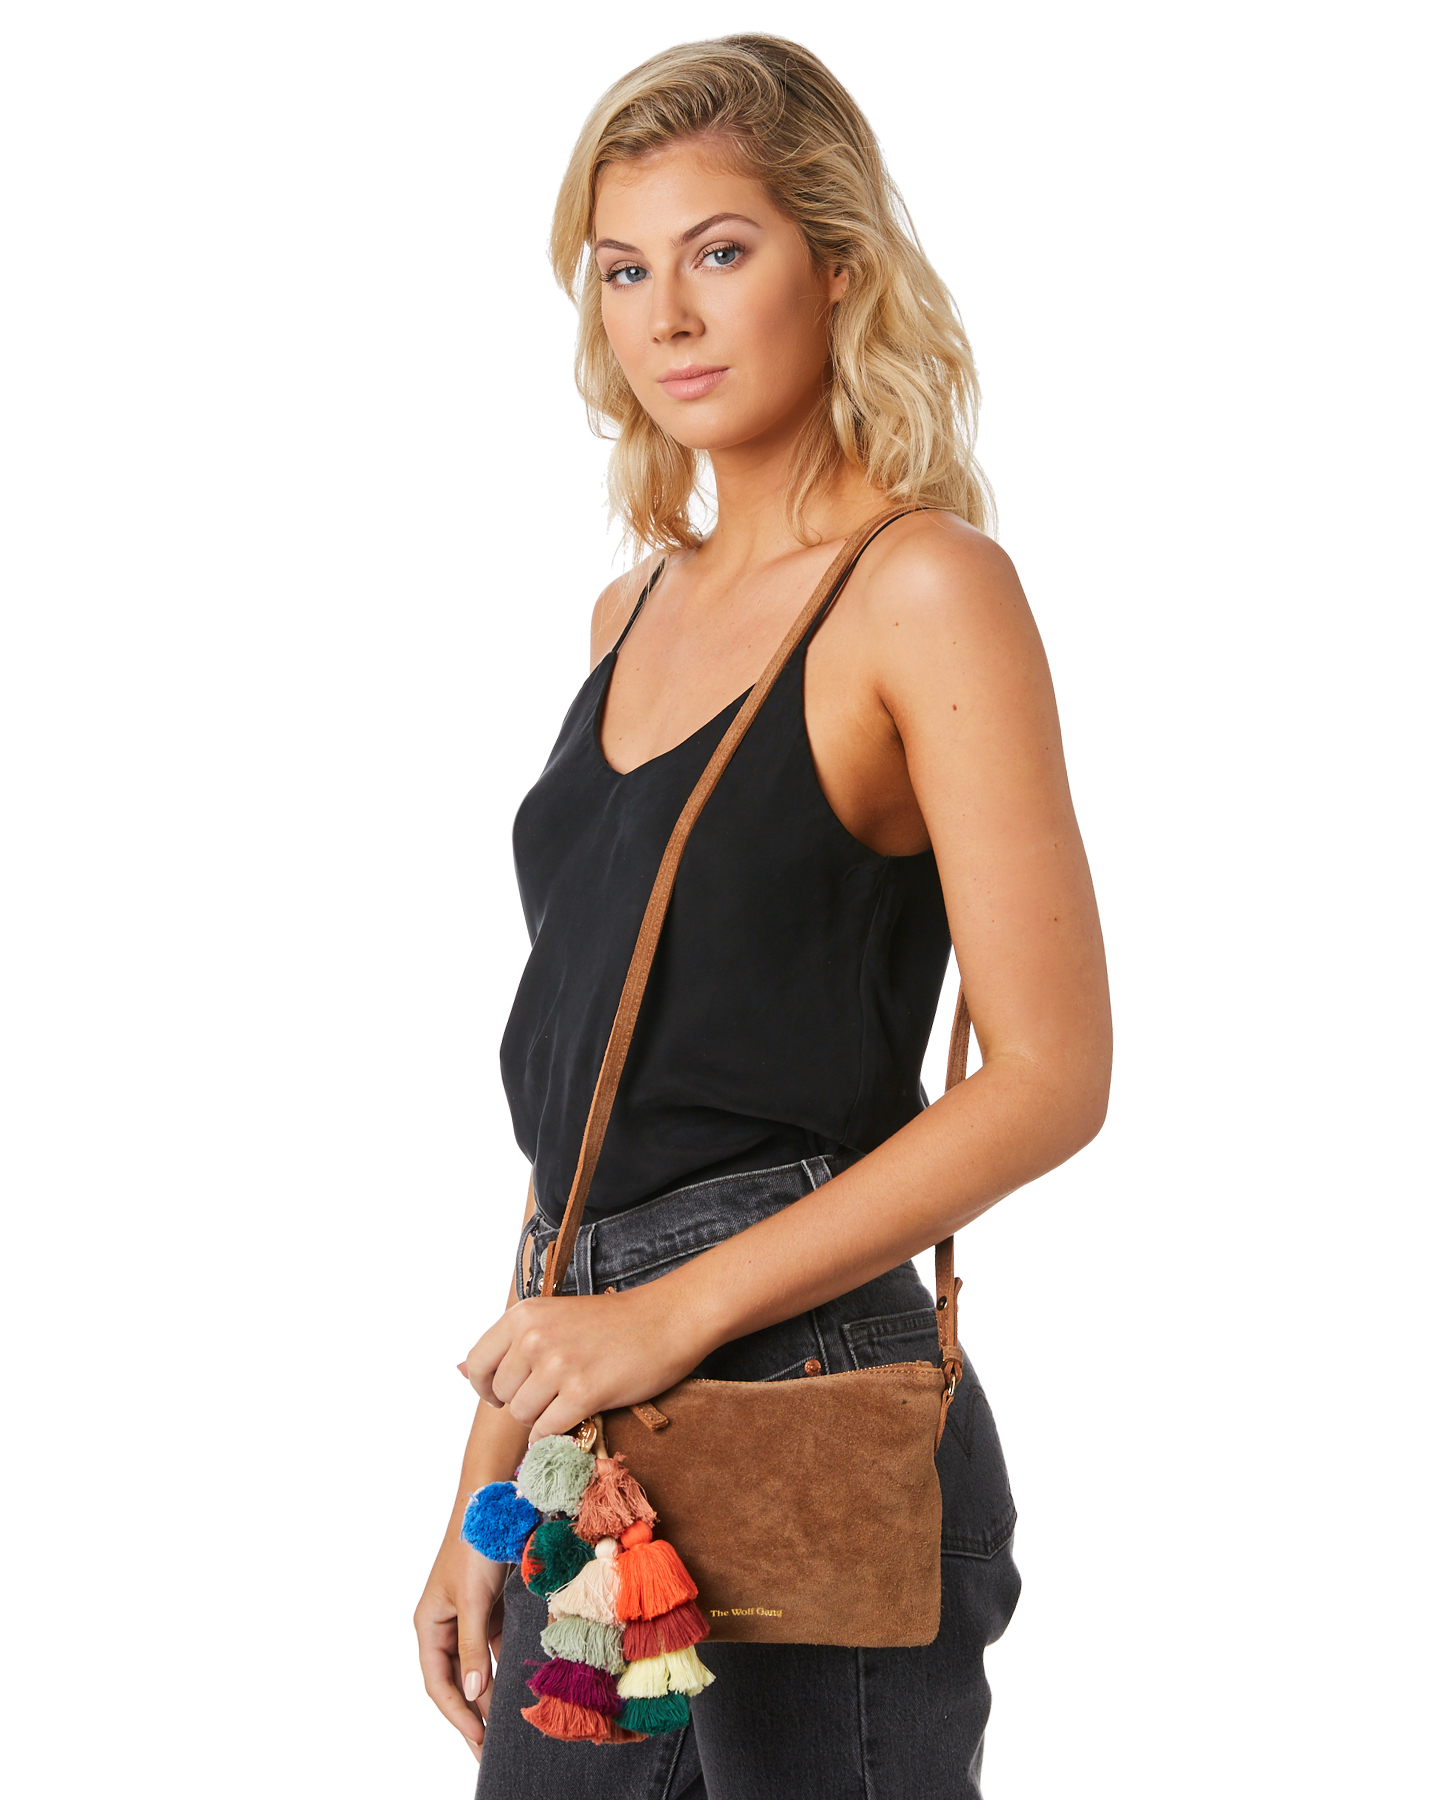 New-The-Wolf-Gang-Women-039-s-Rio-Cross-Body-Bag-Suede-Canvas-Pink thumbnail 15